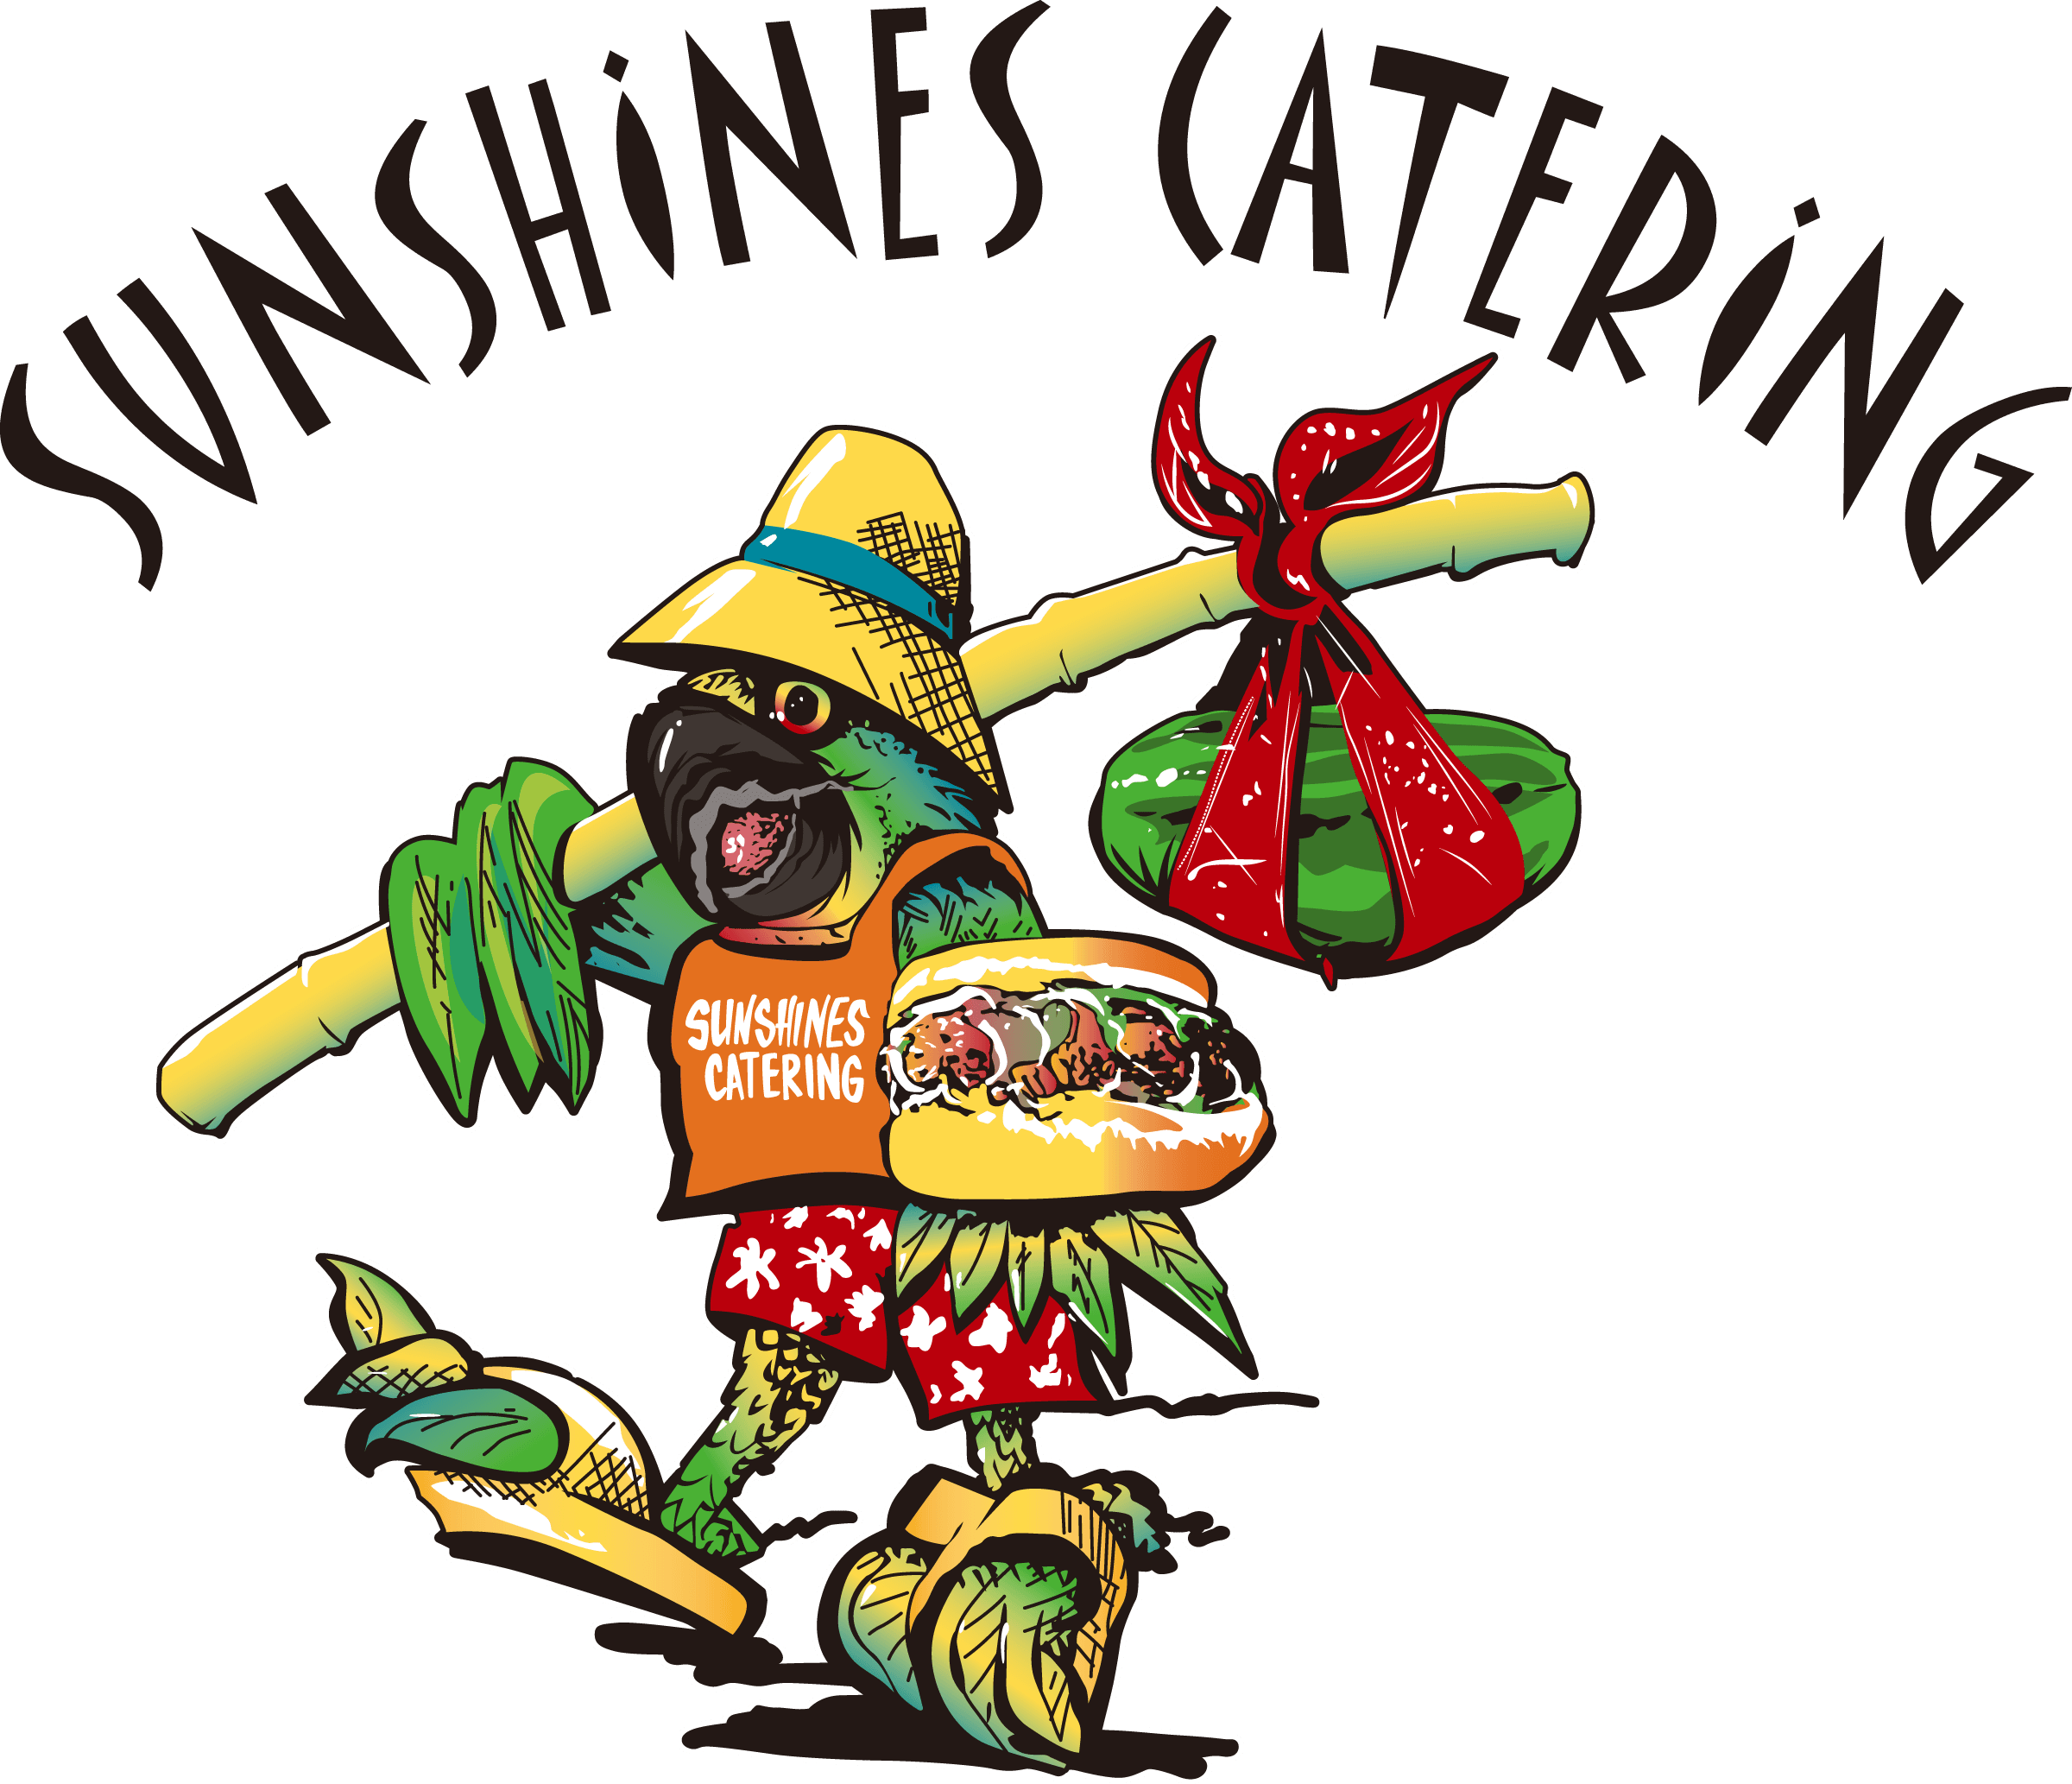 Sunshines Catering